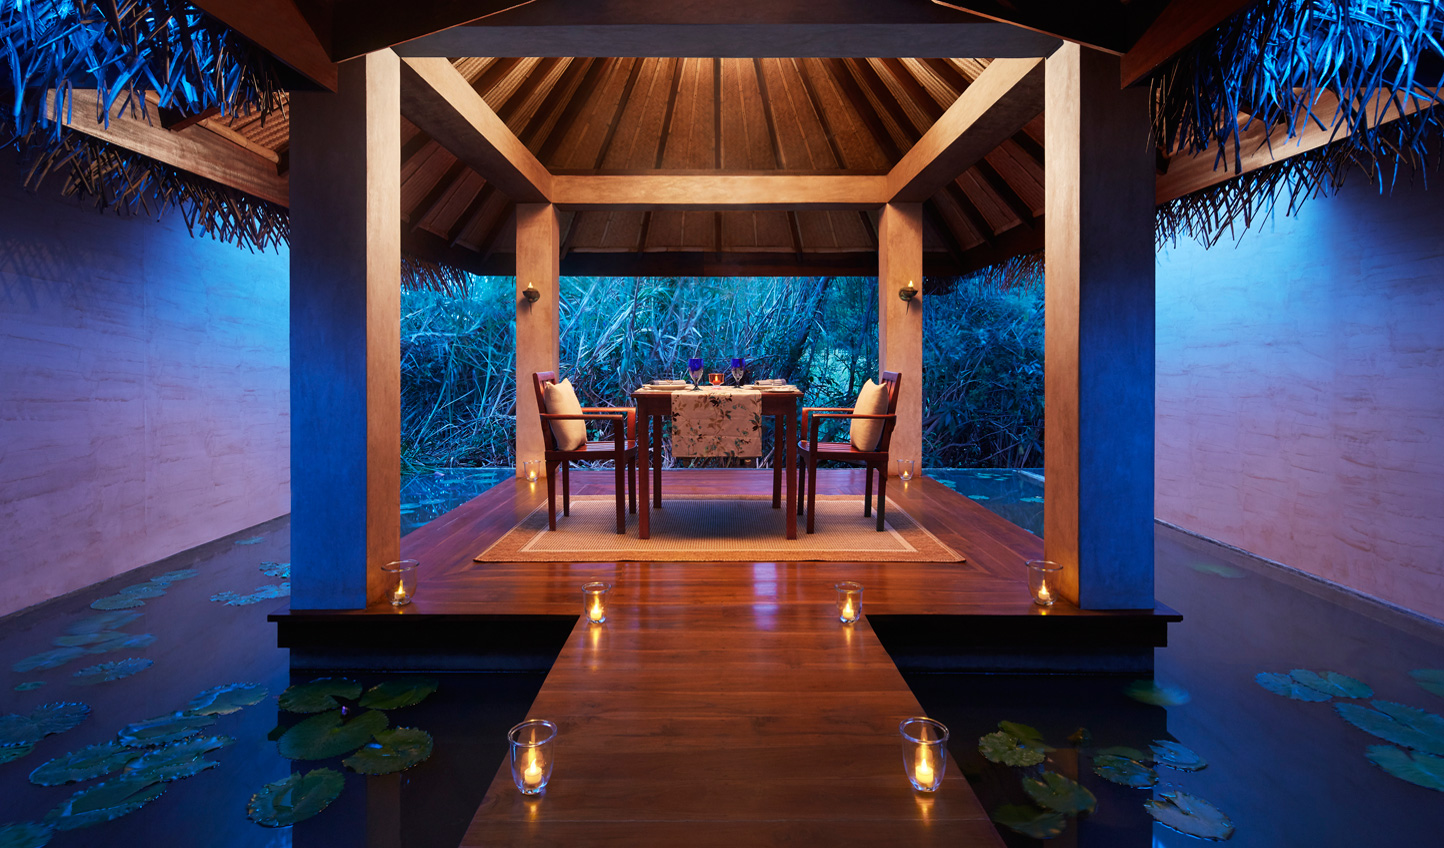 Enjoy a romantic candlelit dinner for two in the Spa Pavilion